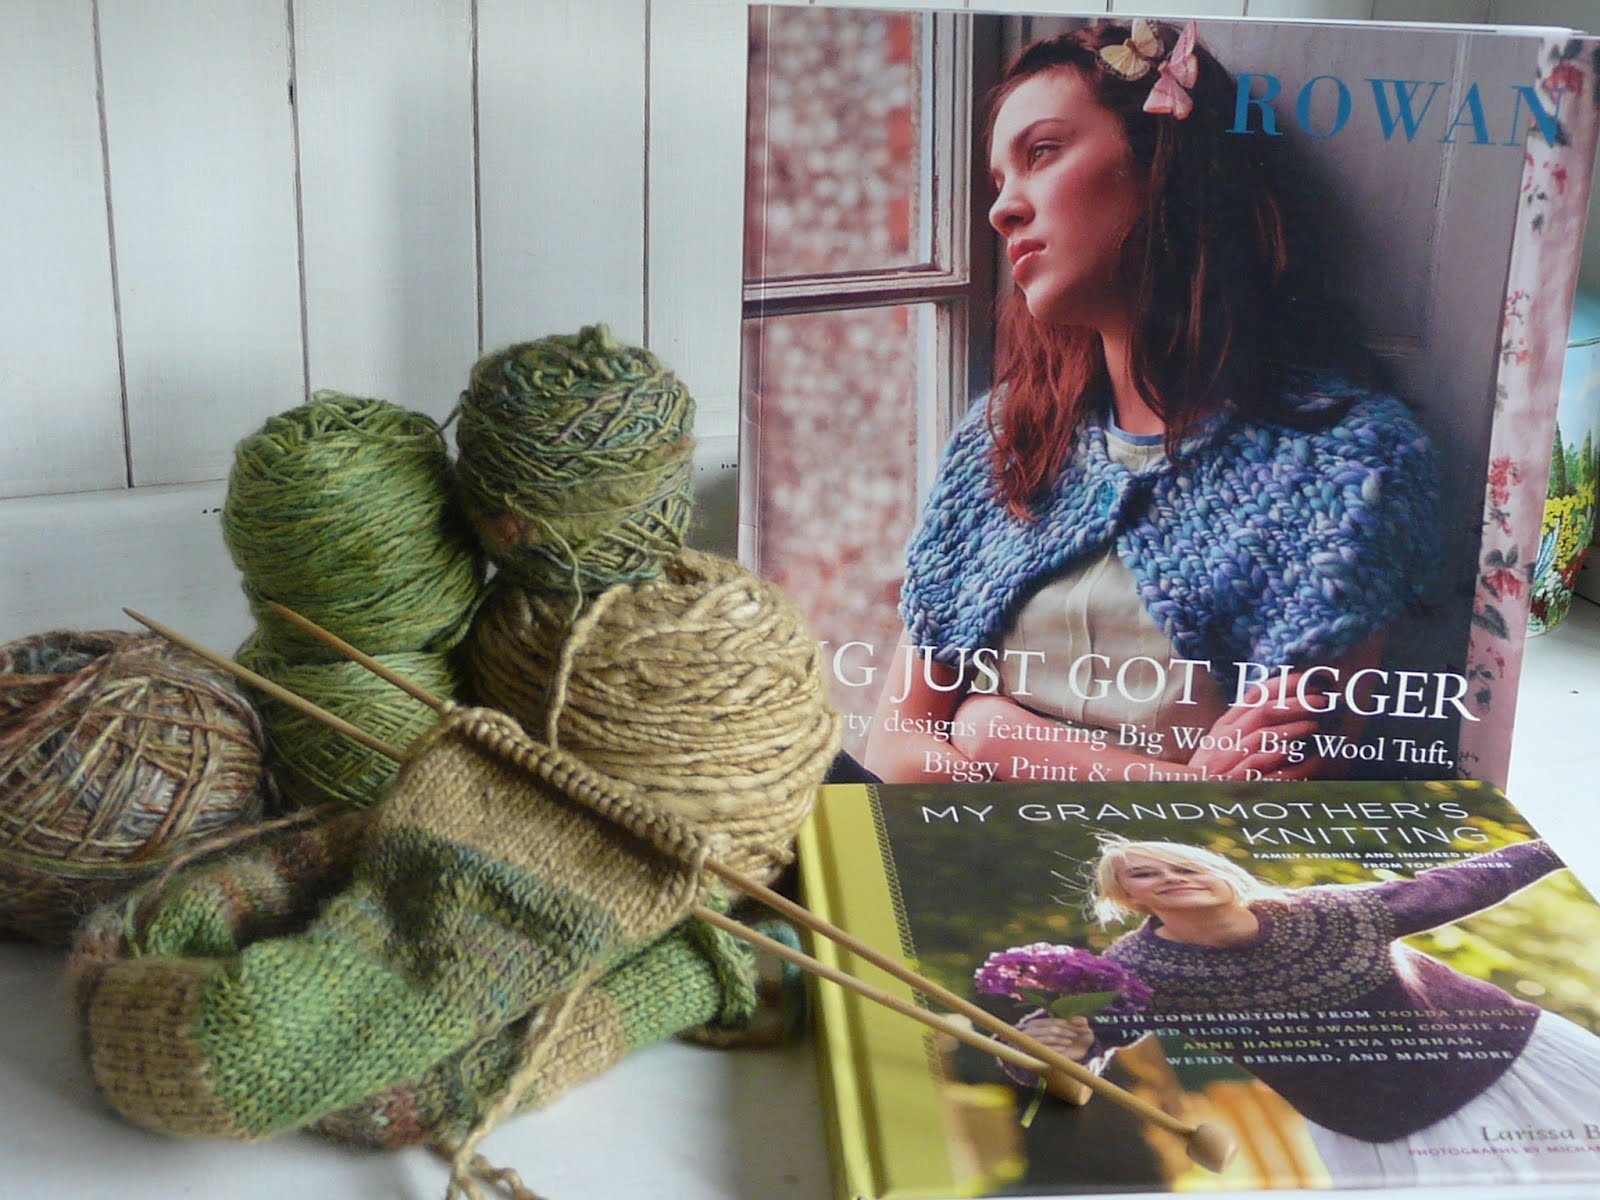 down in the meadow: New knitting books, knitted scarf and a painting